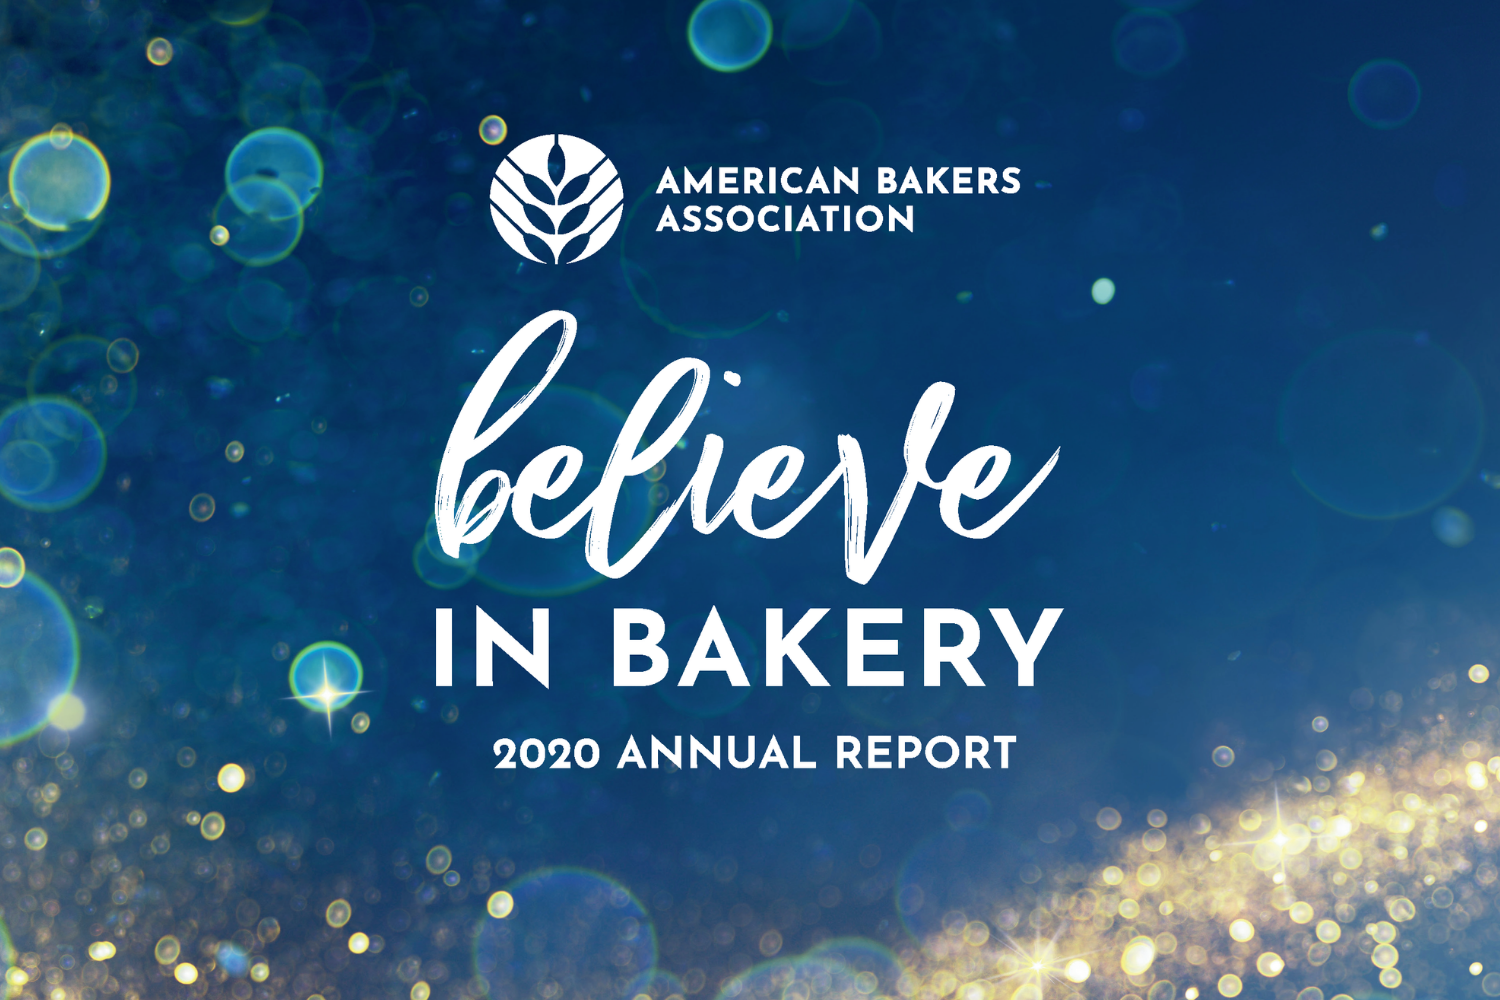 Believe in Bakery